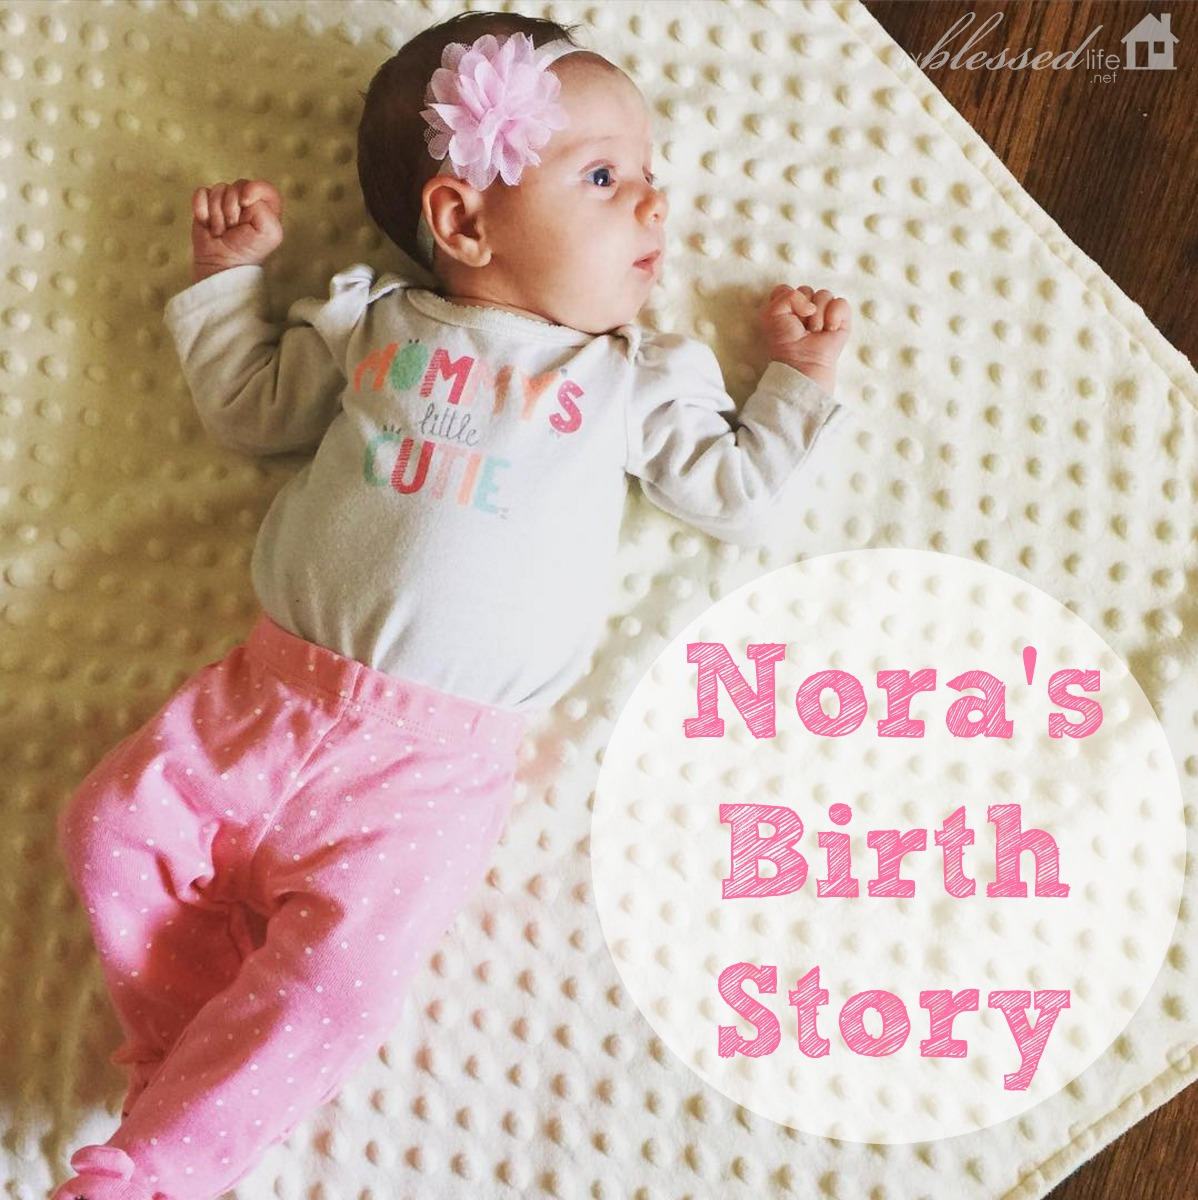 Nora's Birth Story